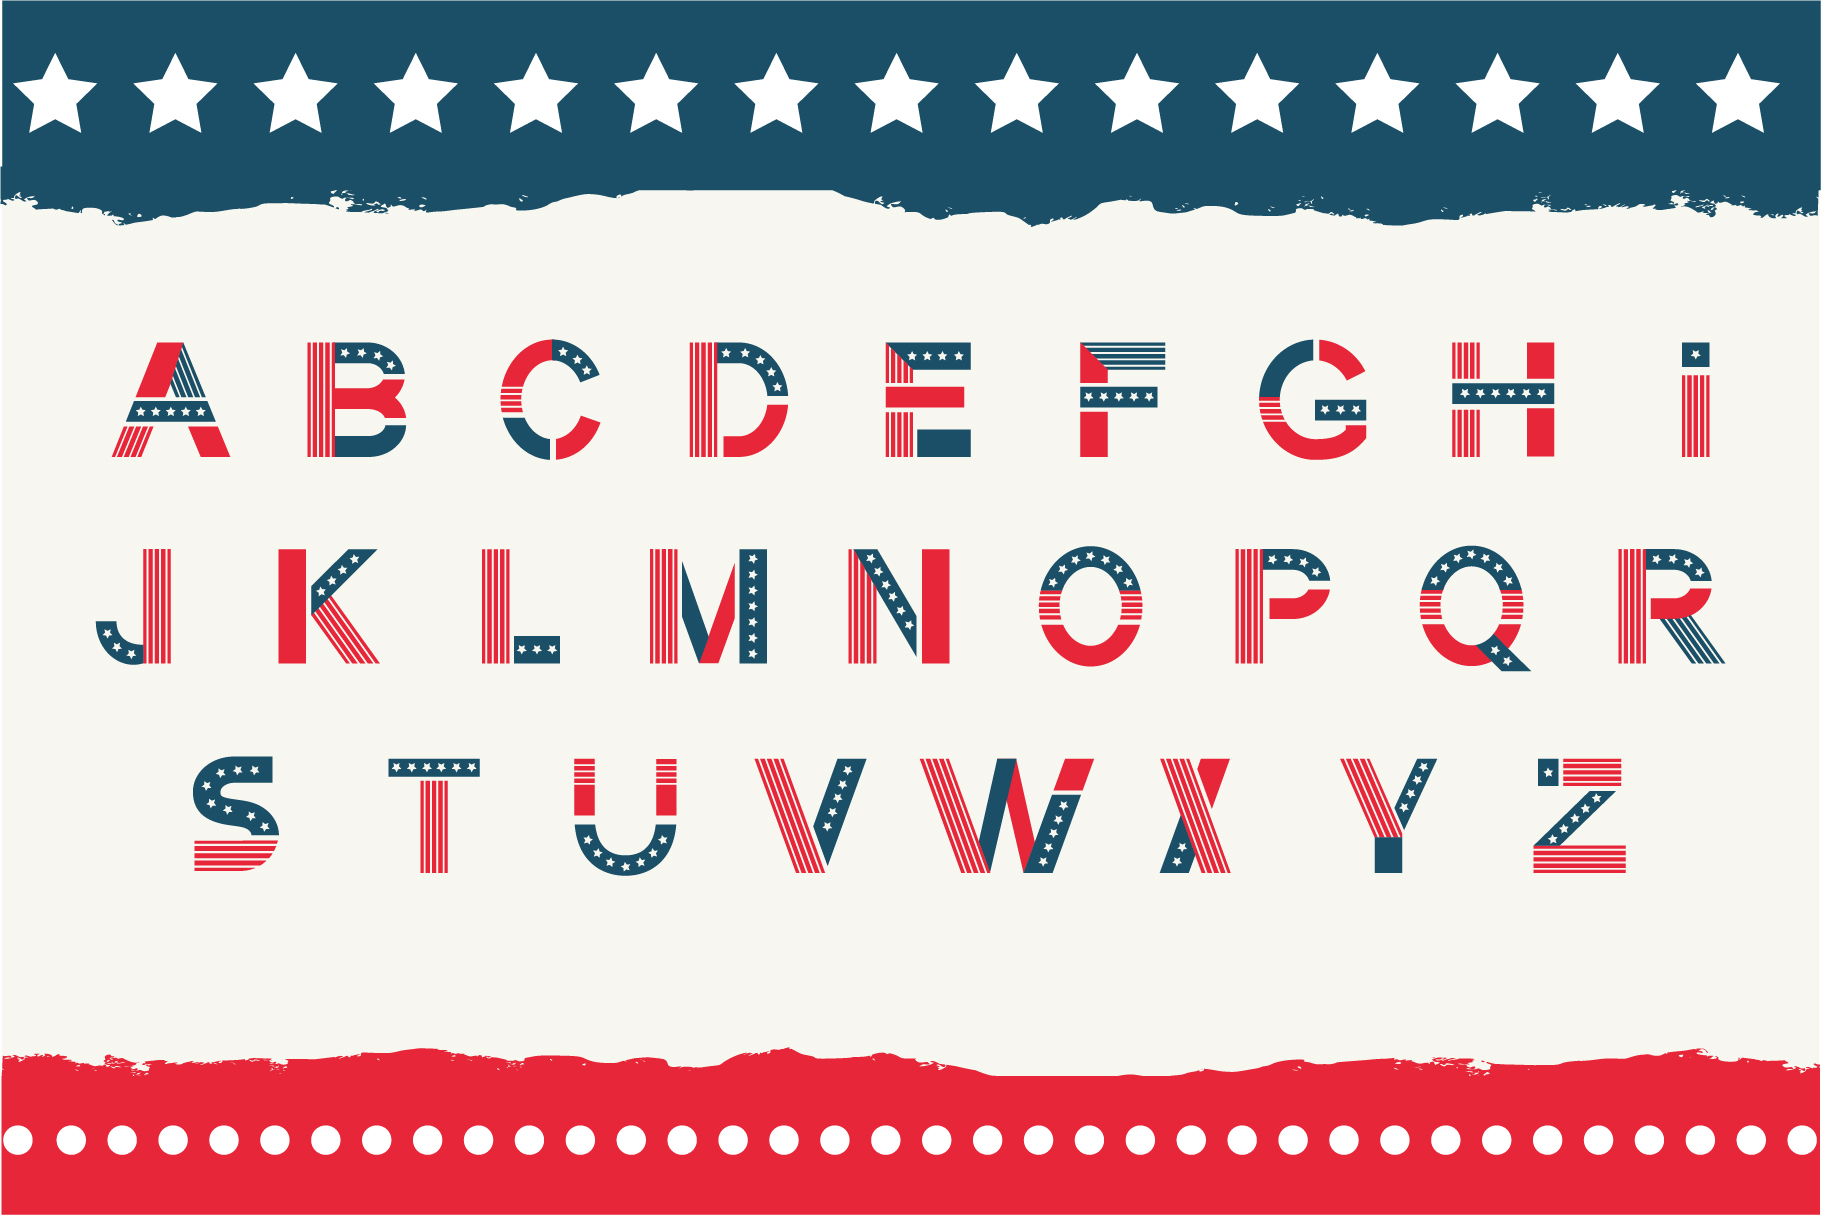 America otf color font example image 3